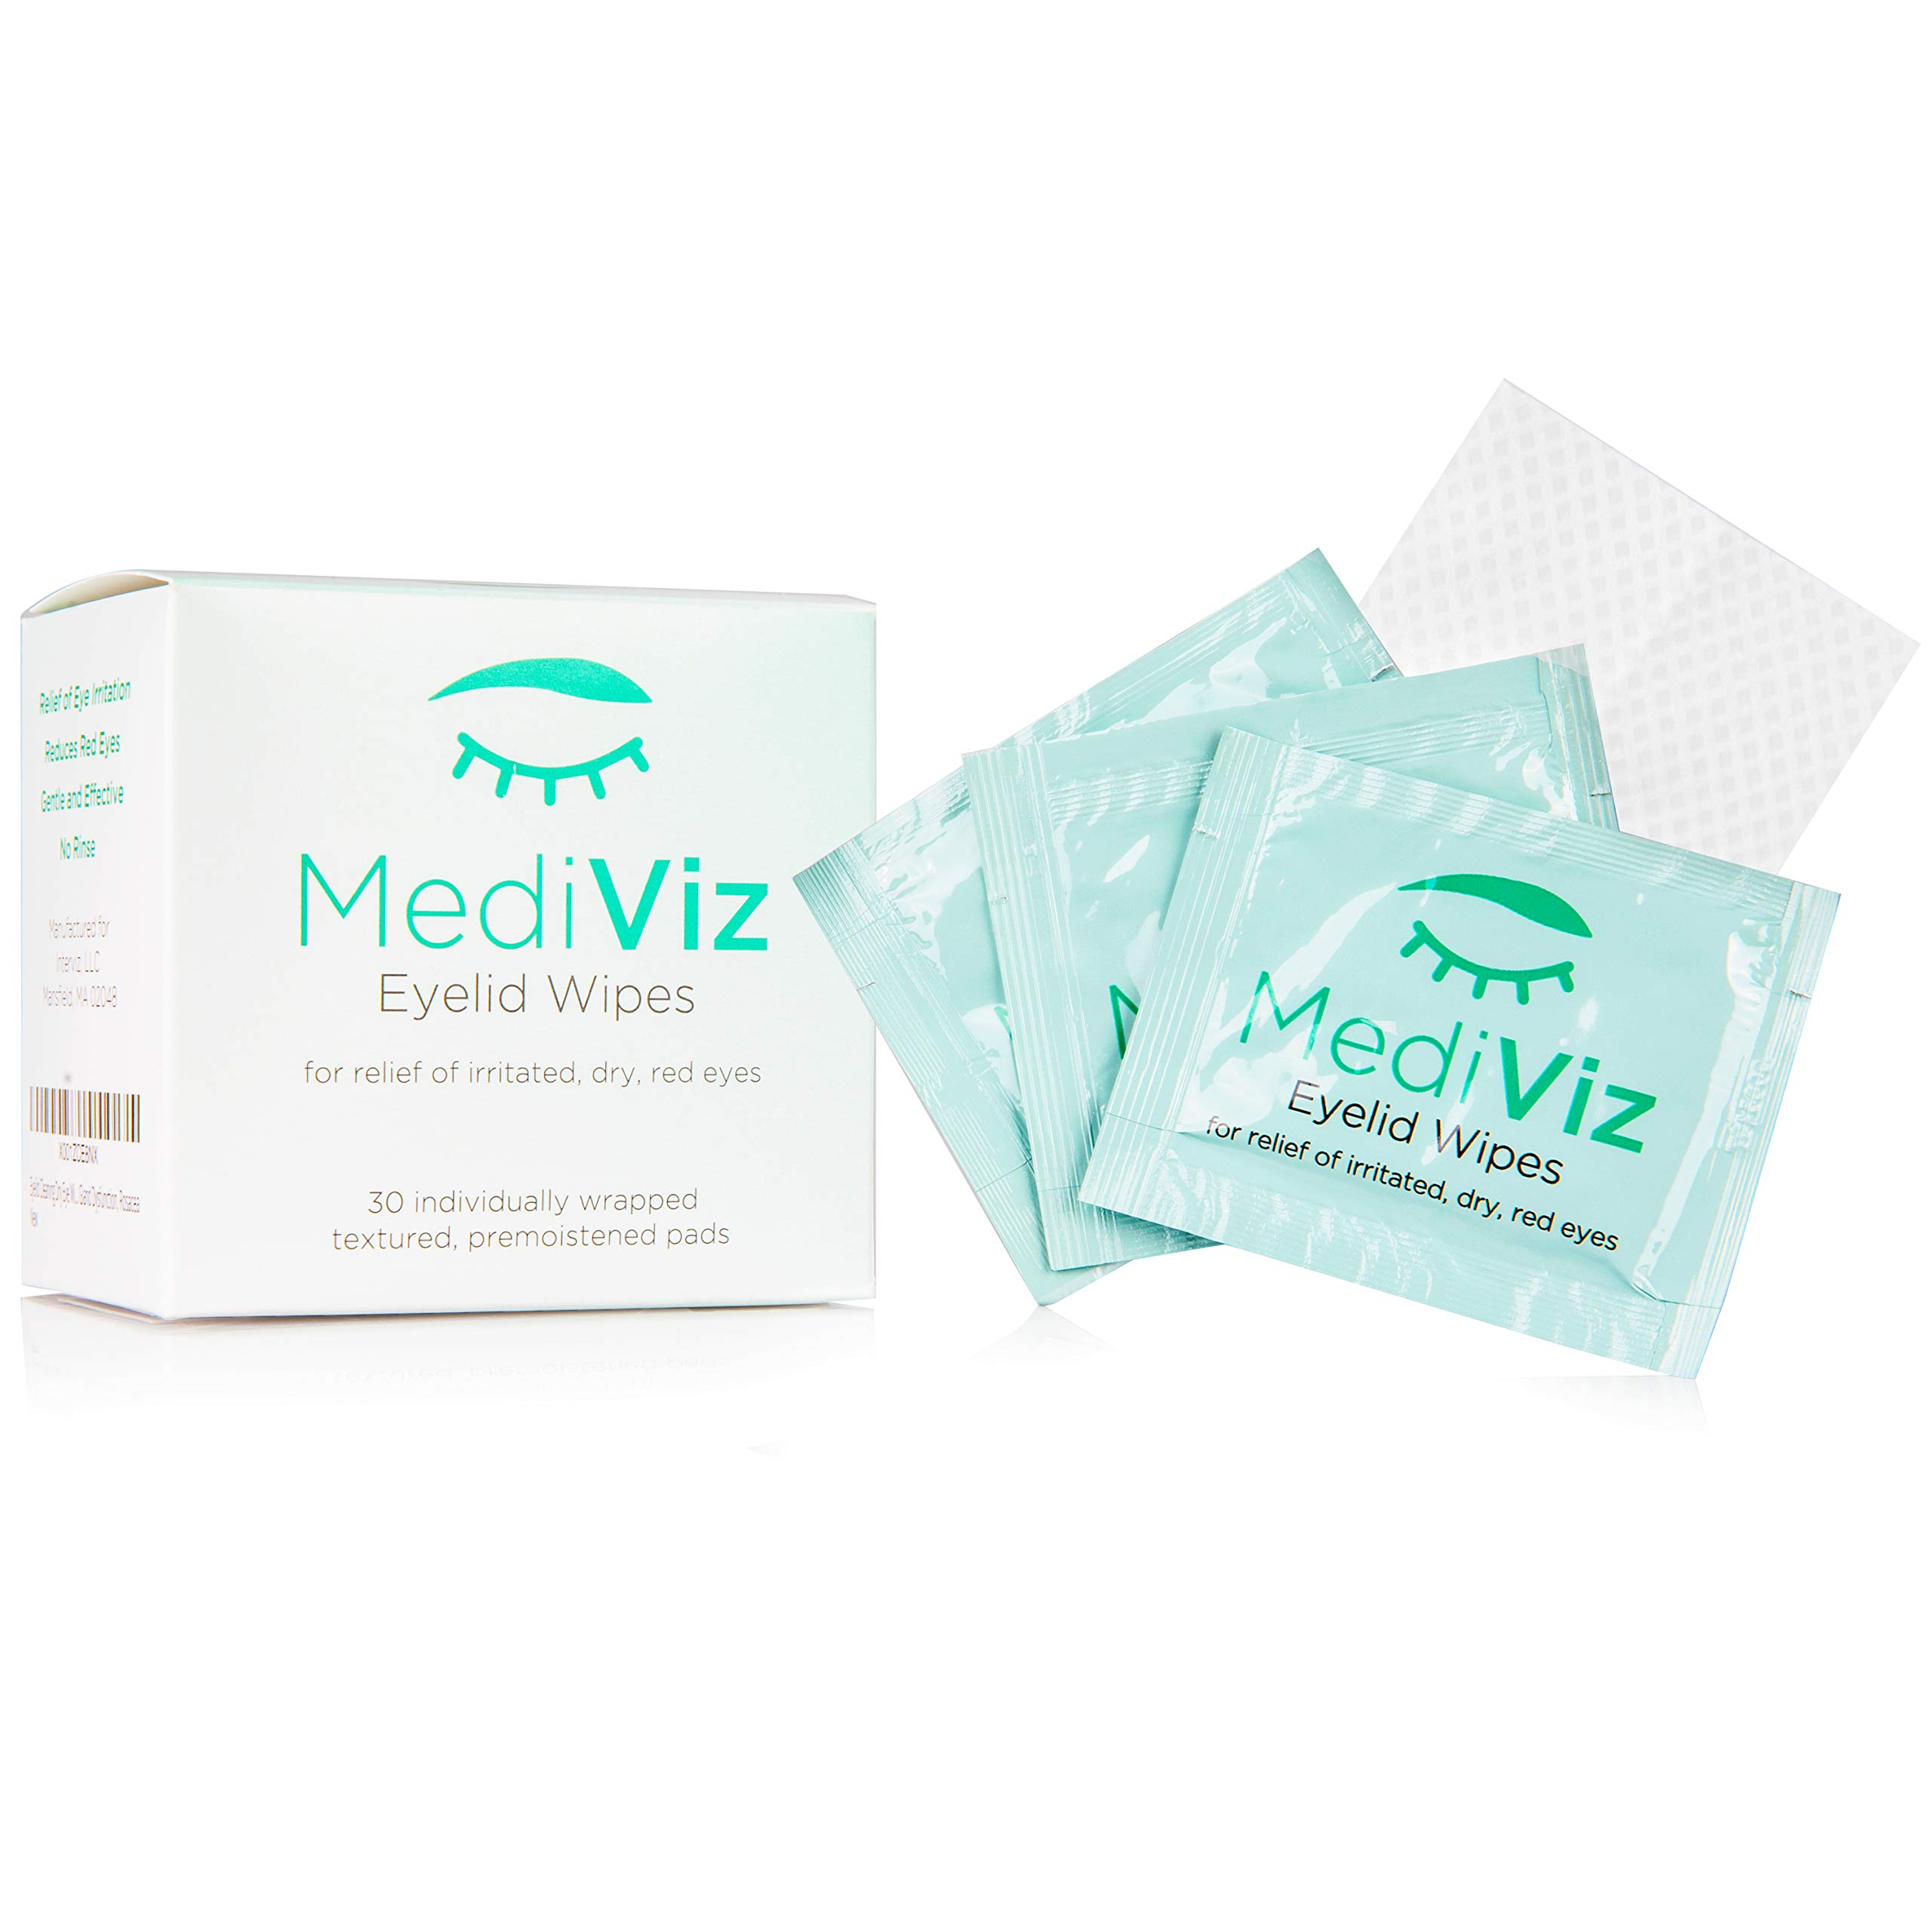 Eyelid Cleaning Wipes - Mediviz, Exfoliating, Purified, Hypoallergenic, Helps Avoid Crusty Eyelashes, Eyelid Bumps, Ocular Allergies, Demodex Mites, Clogged Meibomian Glands, Inflamed Skin Conditions by MEDIVIZ